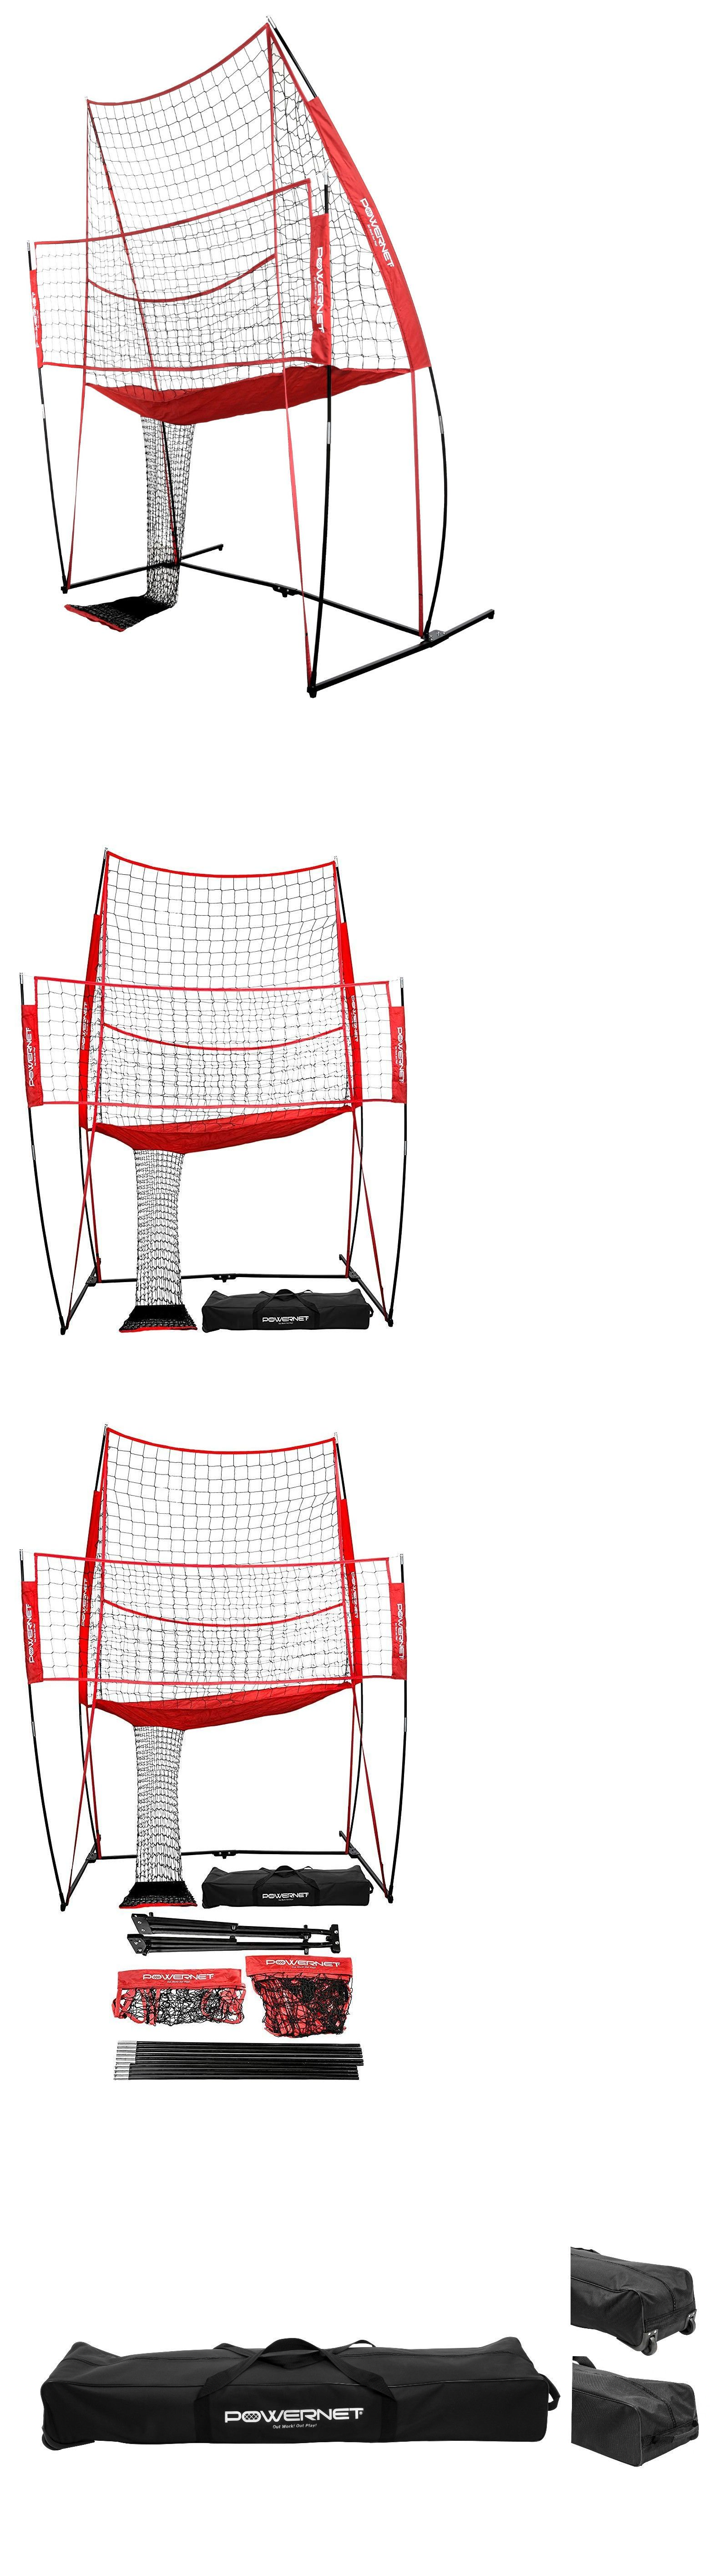 Nets 159131 Powernet Volleyball Practice Net 8 W X 11 H Ball Return Hitting Station Buy It Now Only 399 99 On Ebay Powerne Nets 159131 Volle